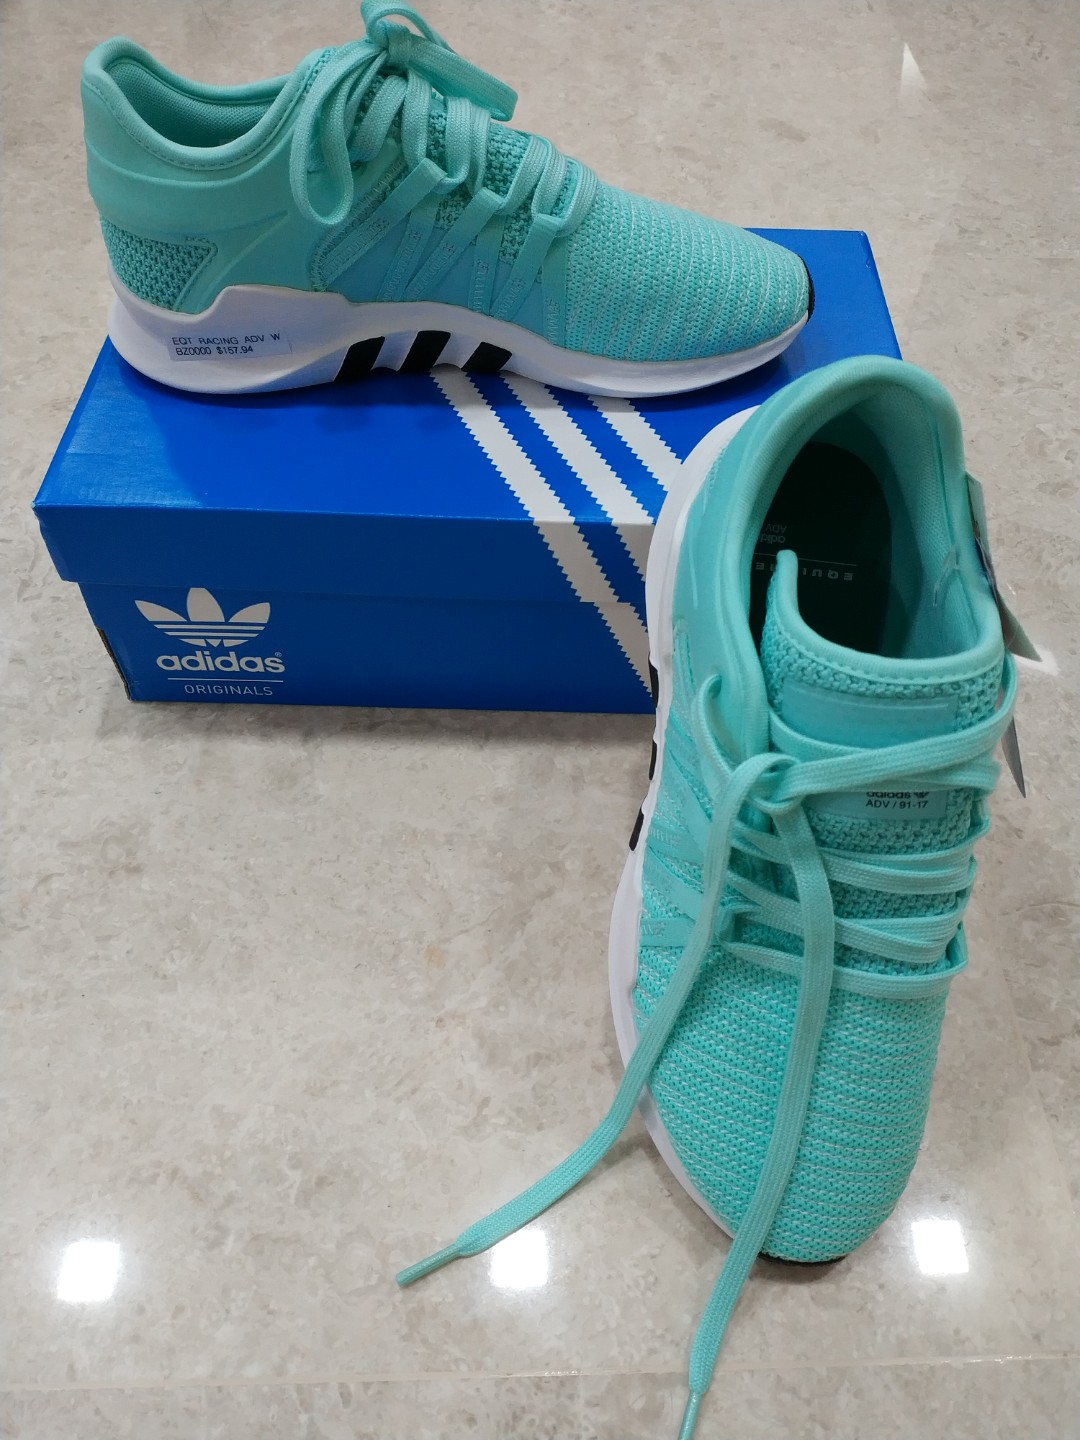 sale retailer 50636 b8732 Adidas EQT Racer ADV W, Women's Fashion, Shoes, Sneakers on Carousell